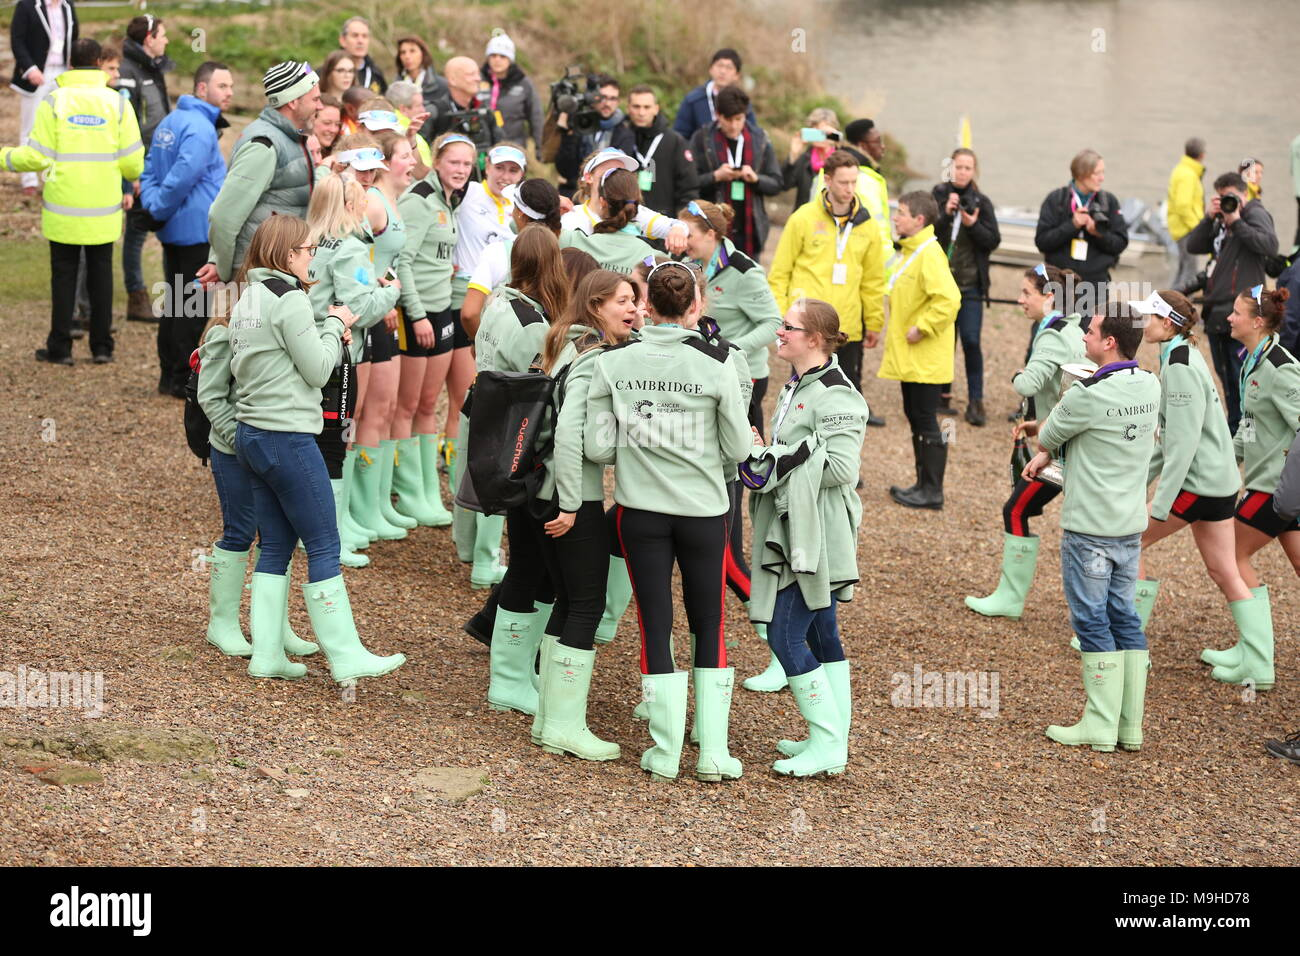 The cancer research Boat Race Sat 24 March 2018 - Stock Image